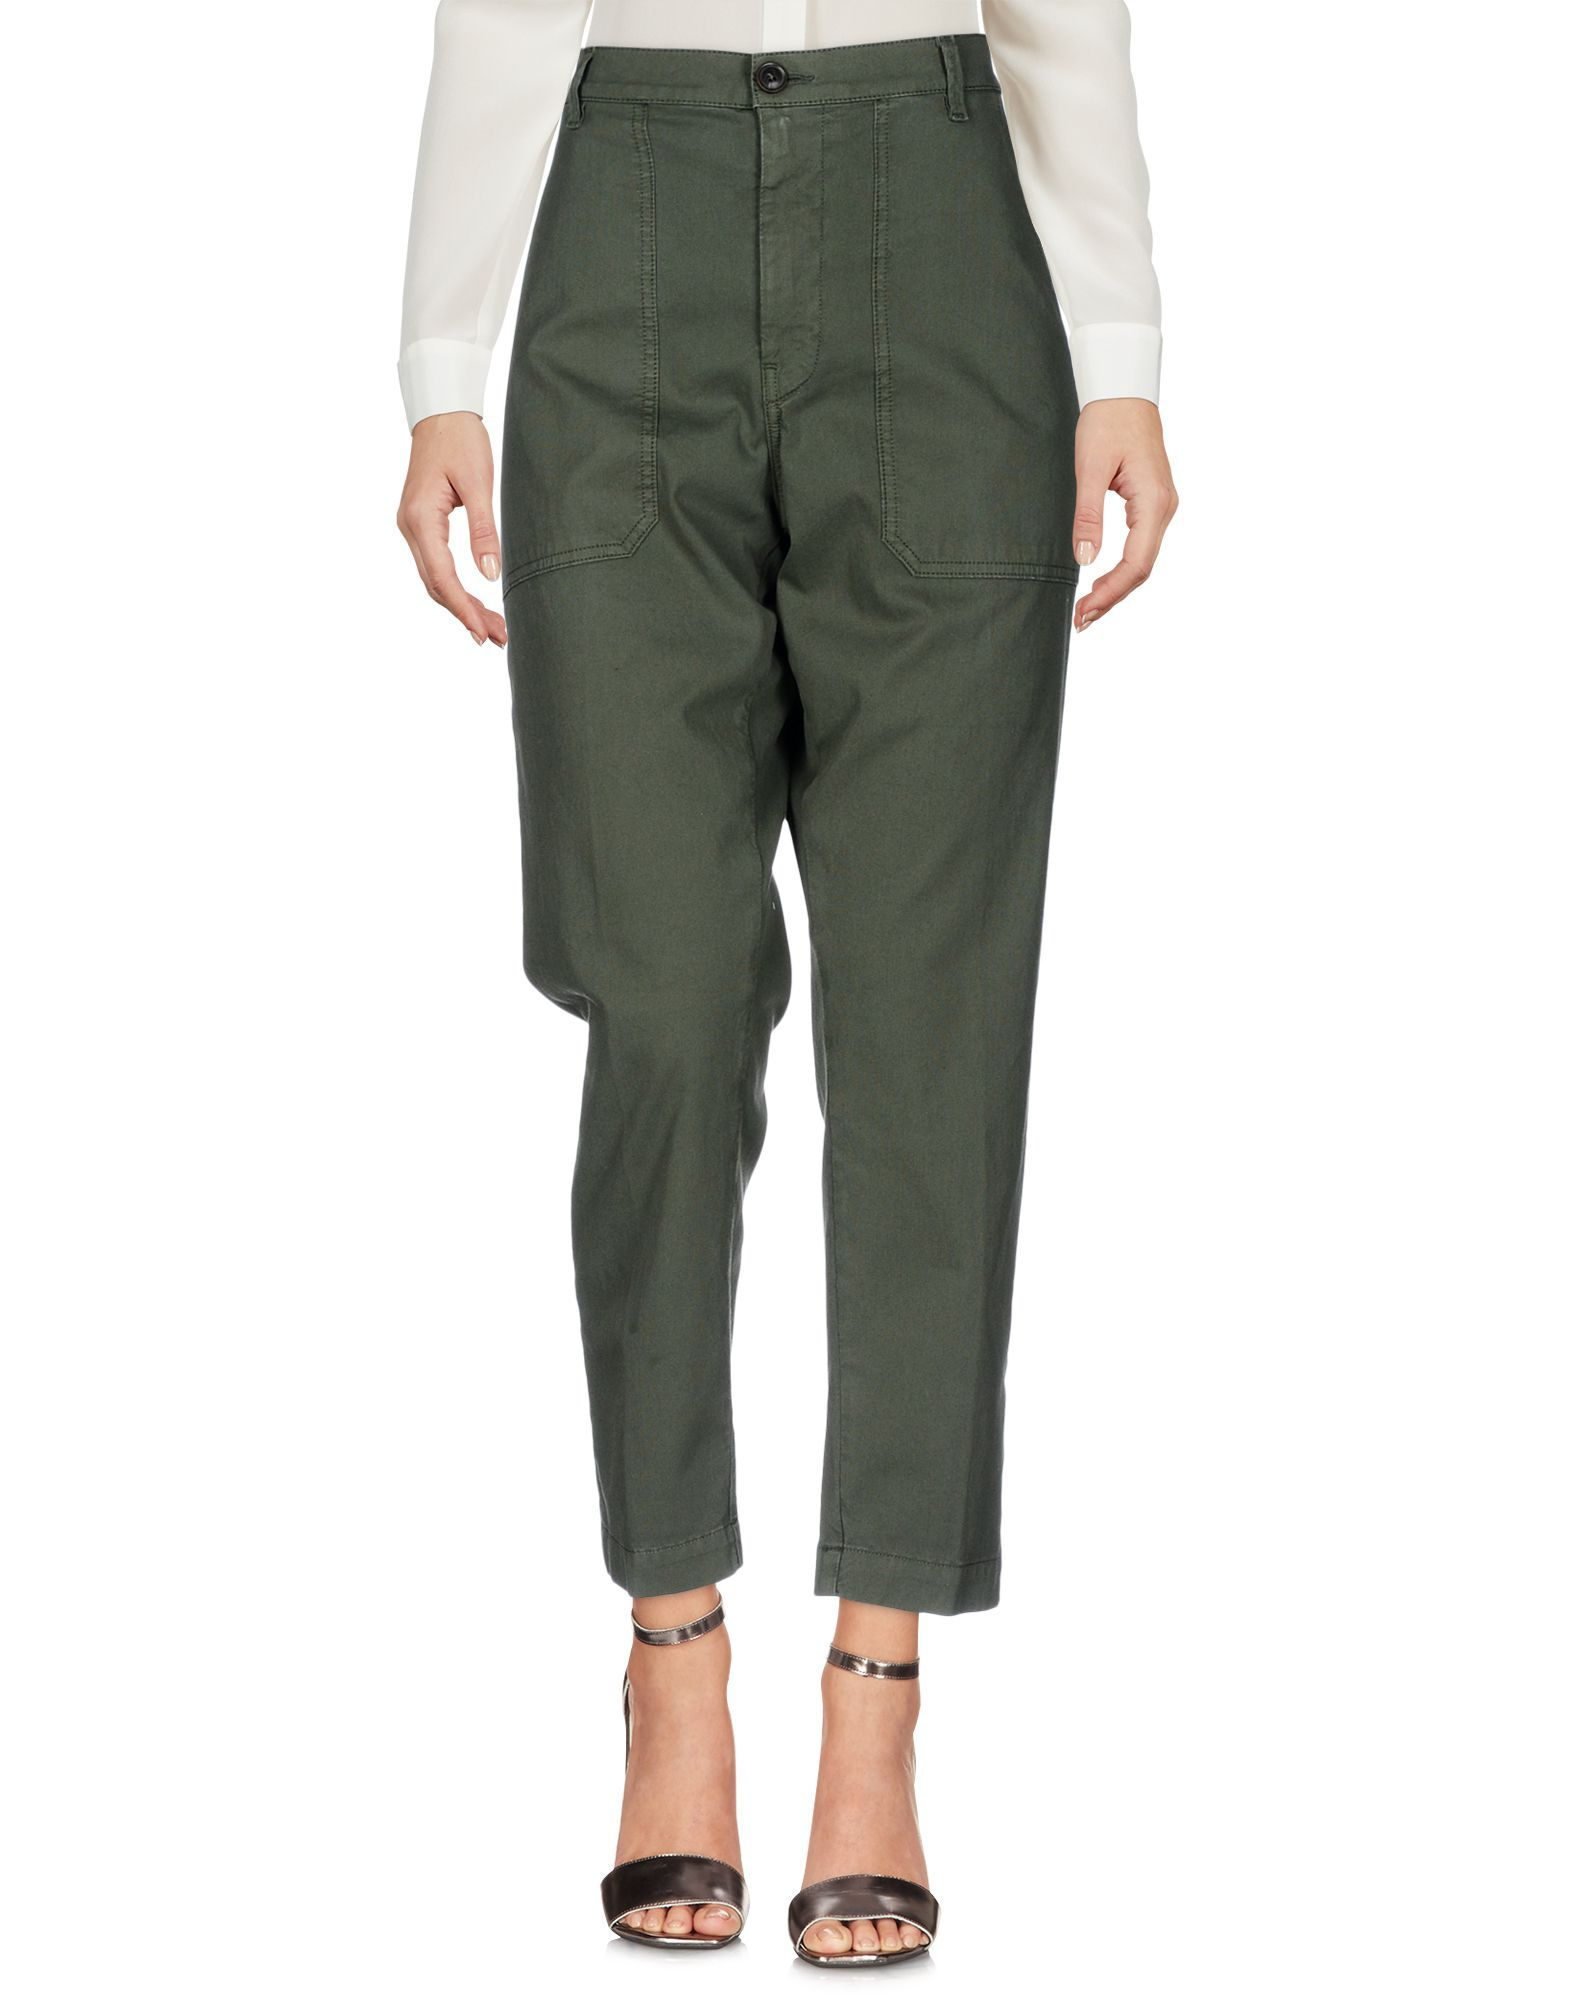 True Nyc� Military Green Cotton Trousers